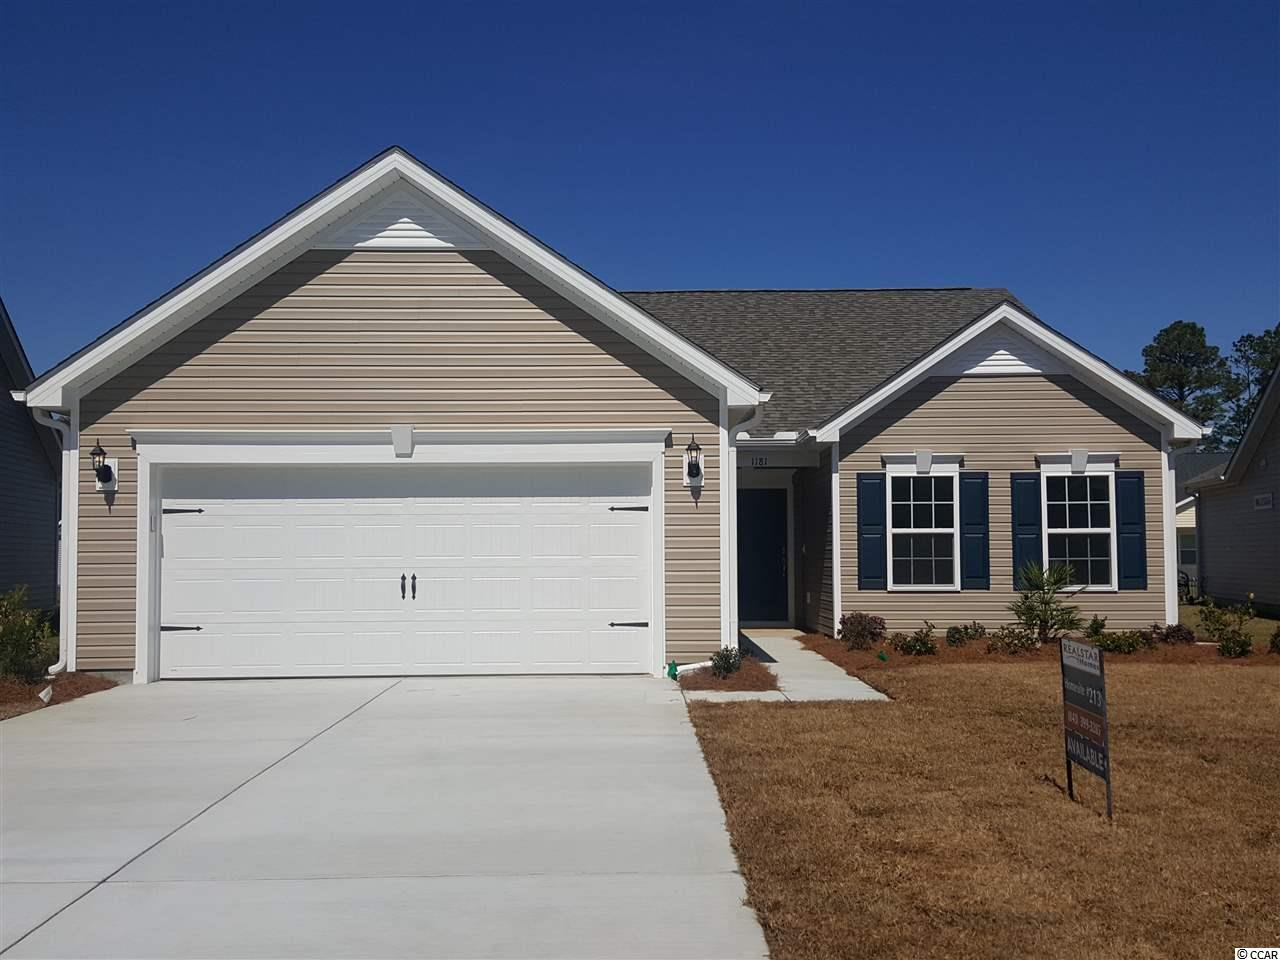 Available Magnolia Floorplan currently under construction. Features include Covered Porch, 30 Year Arc. Shingles, Natural Gas Heat & Hot Water, Maple Cabinets & Full Sodded Yards. Community has New Pool/Club House w/ Workout Room, 10 Minutes from Beach and Around the corner from Hwy 31. We have all of Our Floor Plans Available and Some Nice Home Sites to Choose from that either back up to Trees or Pond.